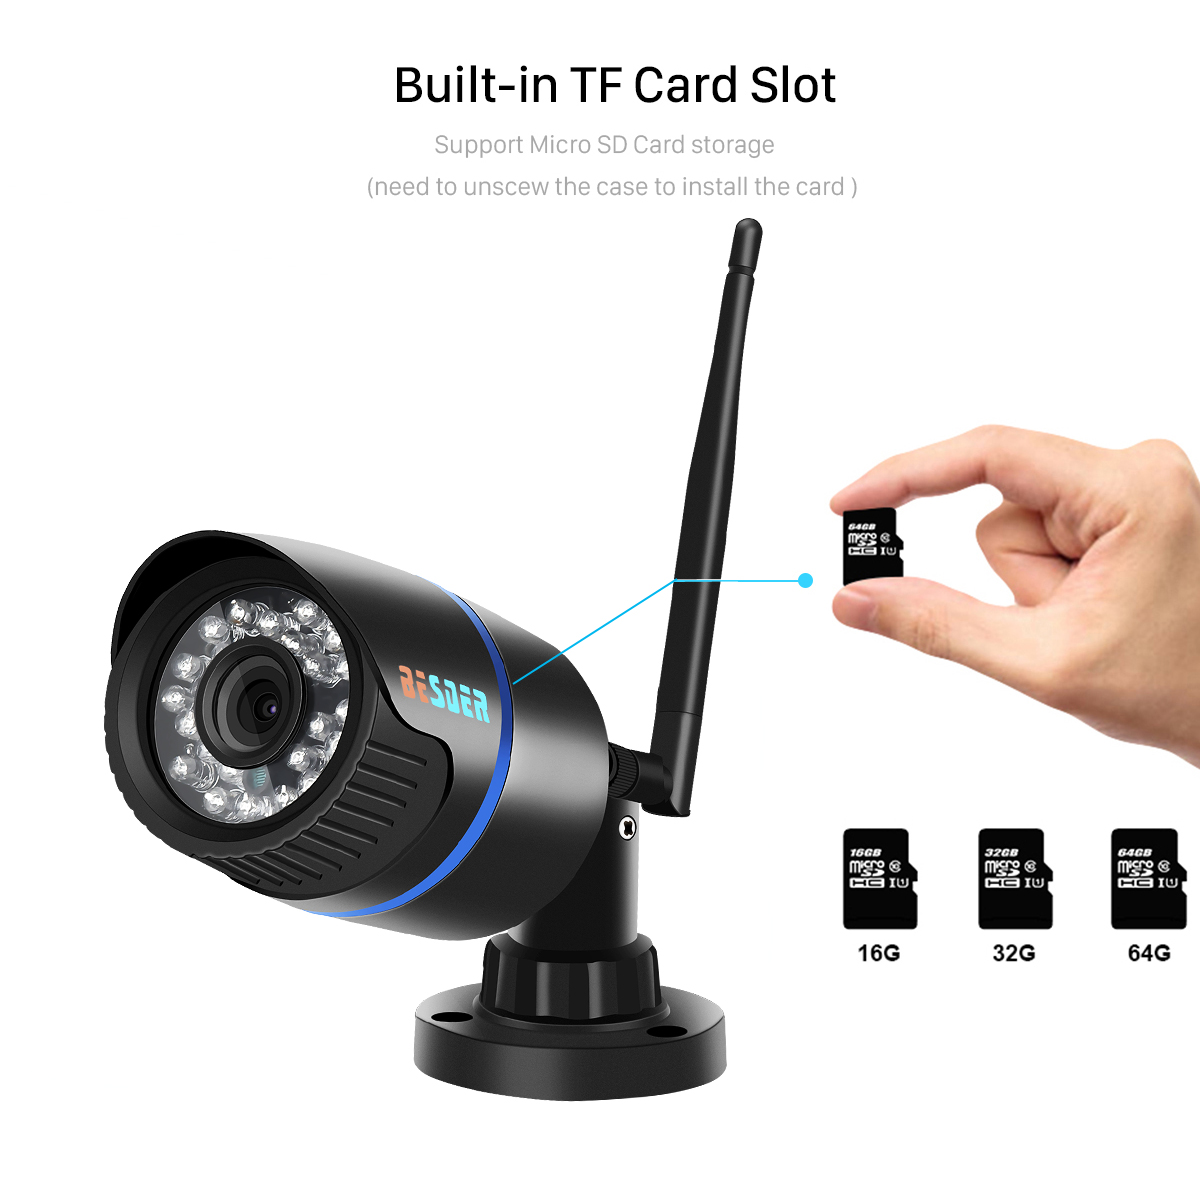 Ha1b7a952968c49a784960a535024fb28H BESDER iCsee Audio Security IP Camera 1080P Wireless Wired ONVIF CCTV Surveillance Outdoor Wifi Camera With SD Card Slot Max 64G